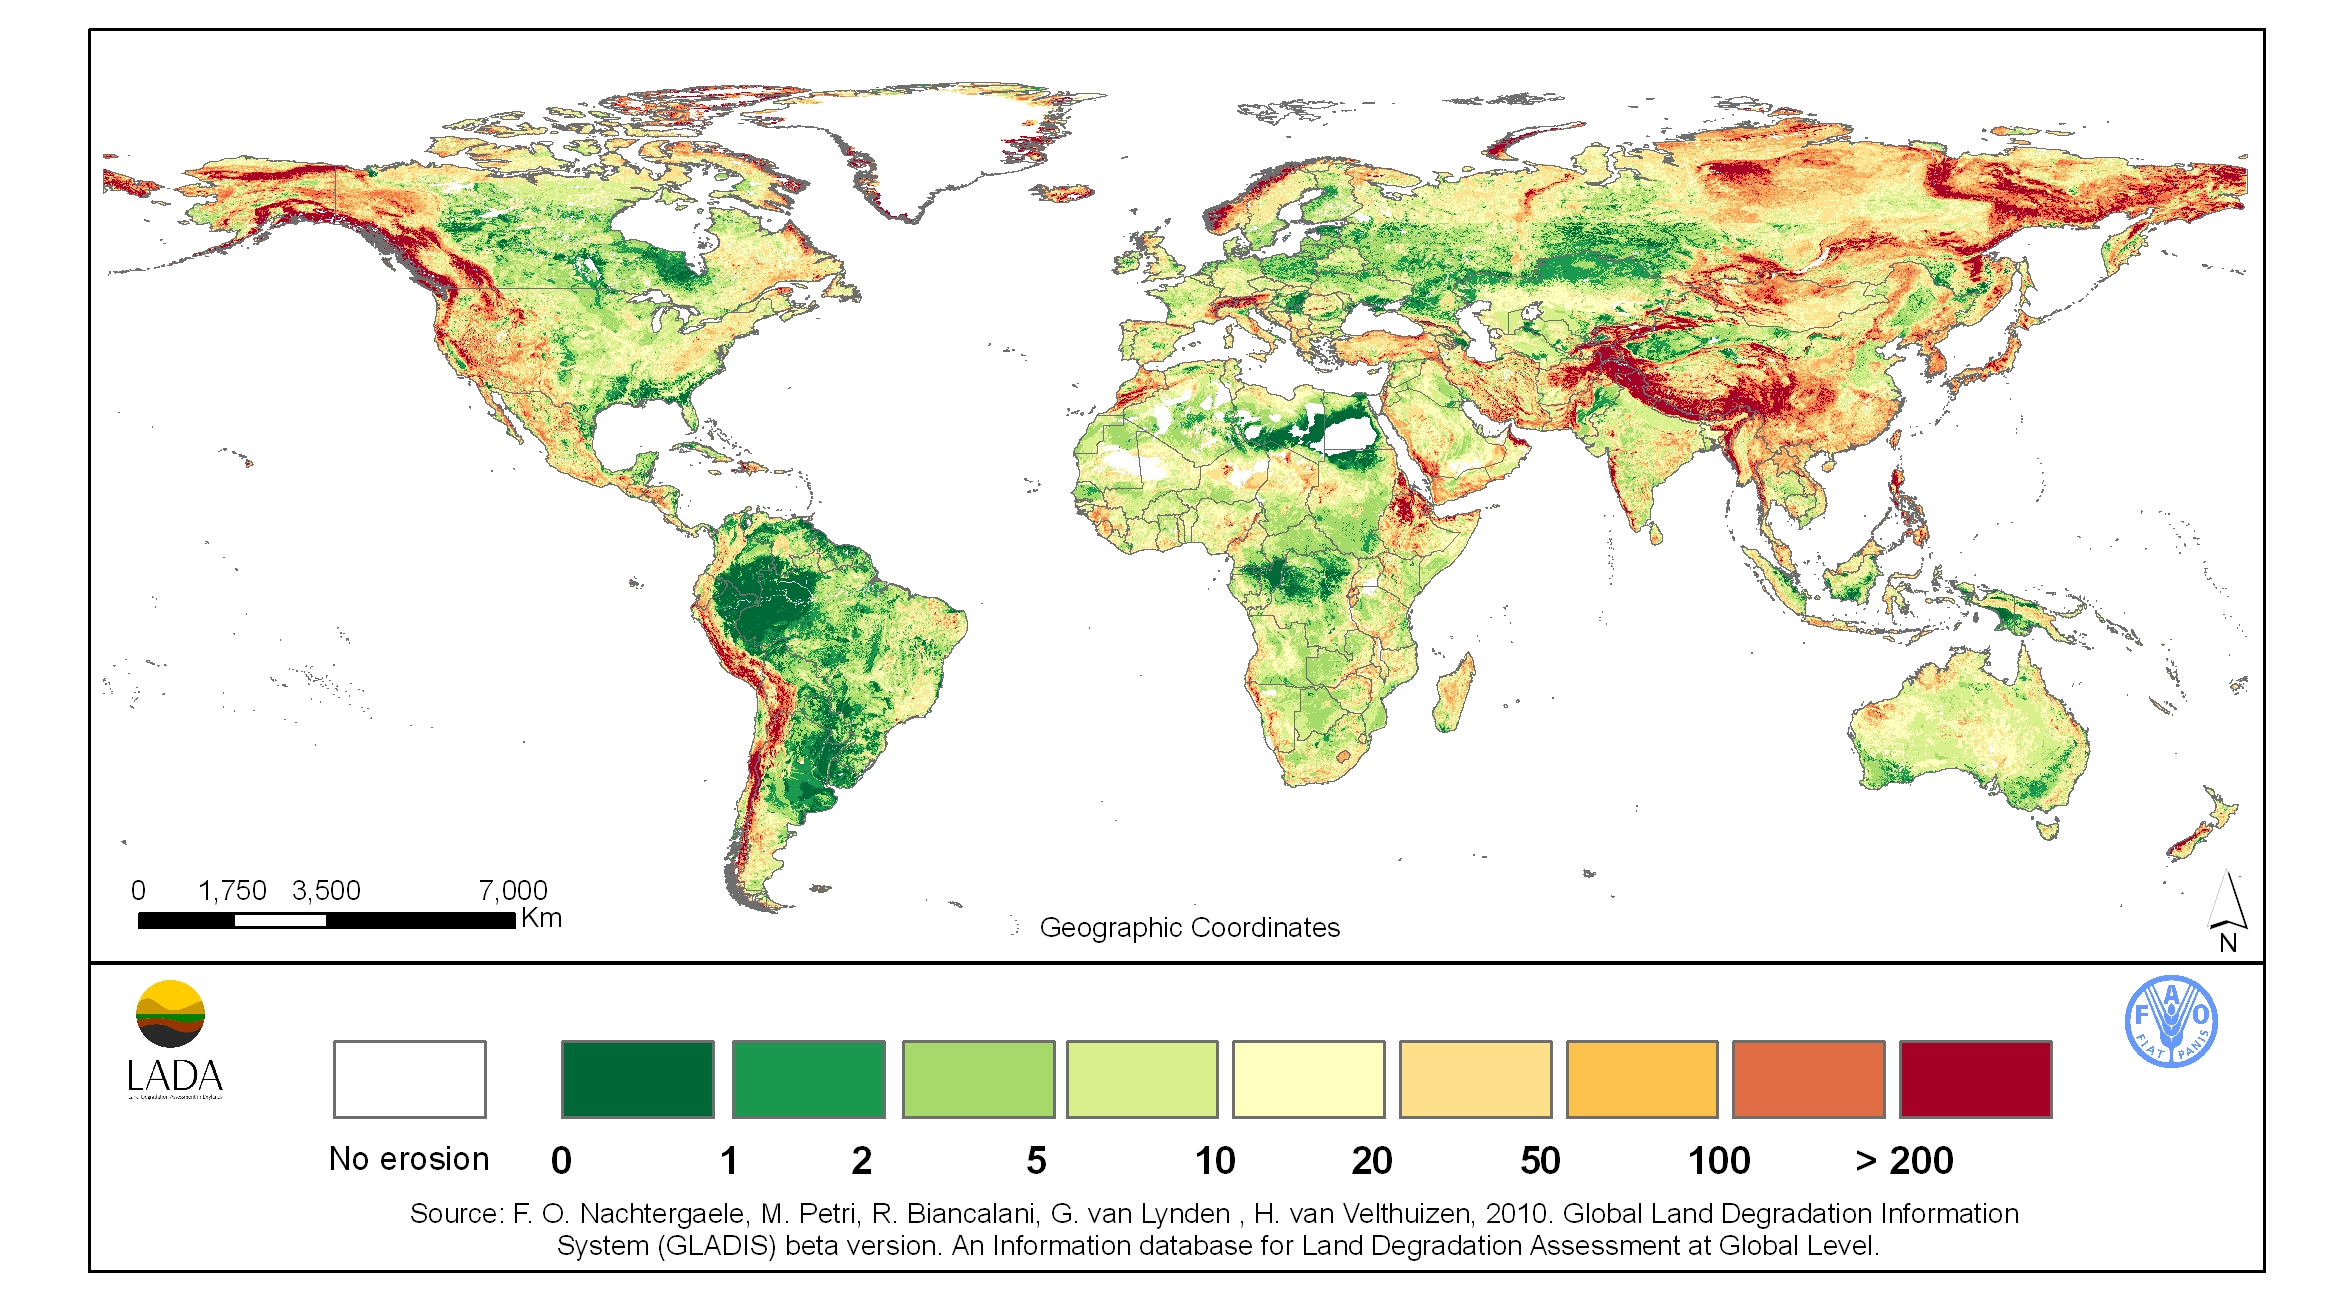 Erosion of the Soils of the World